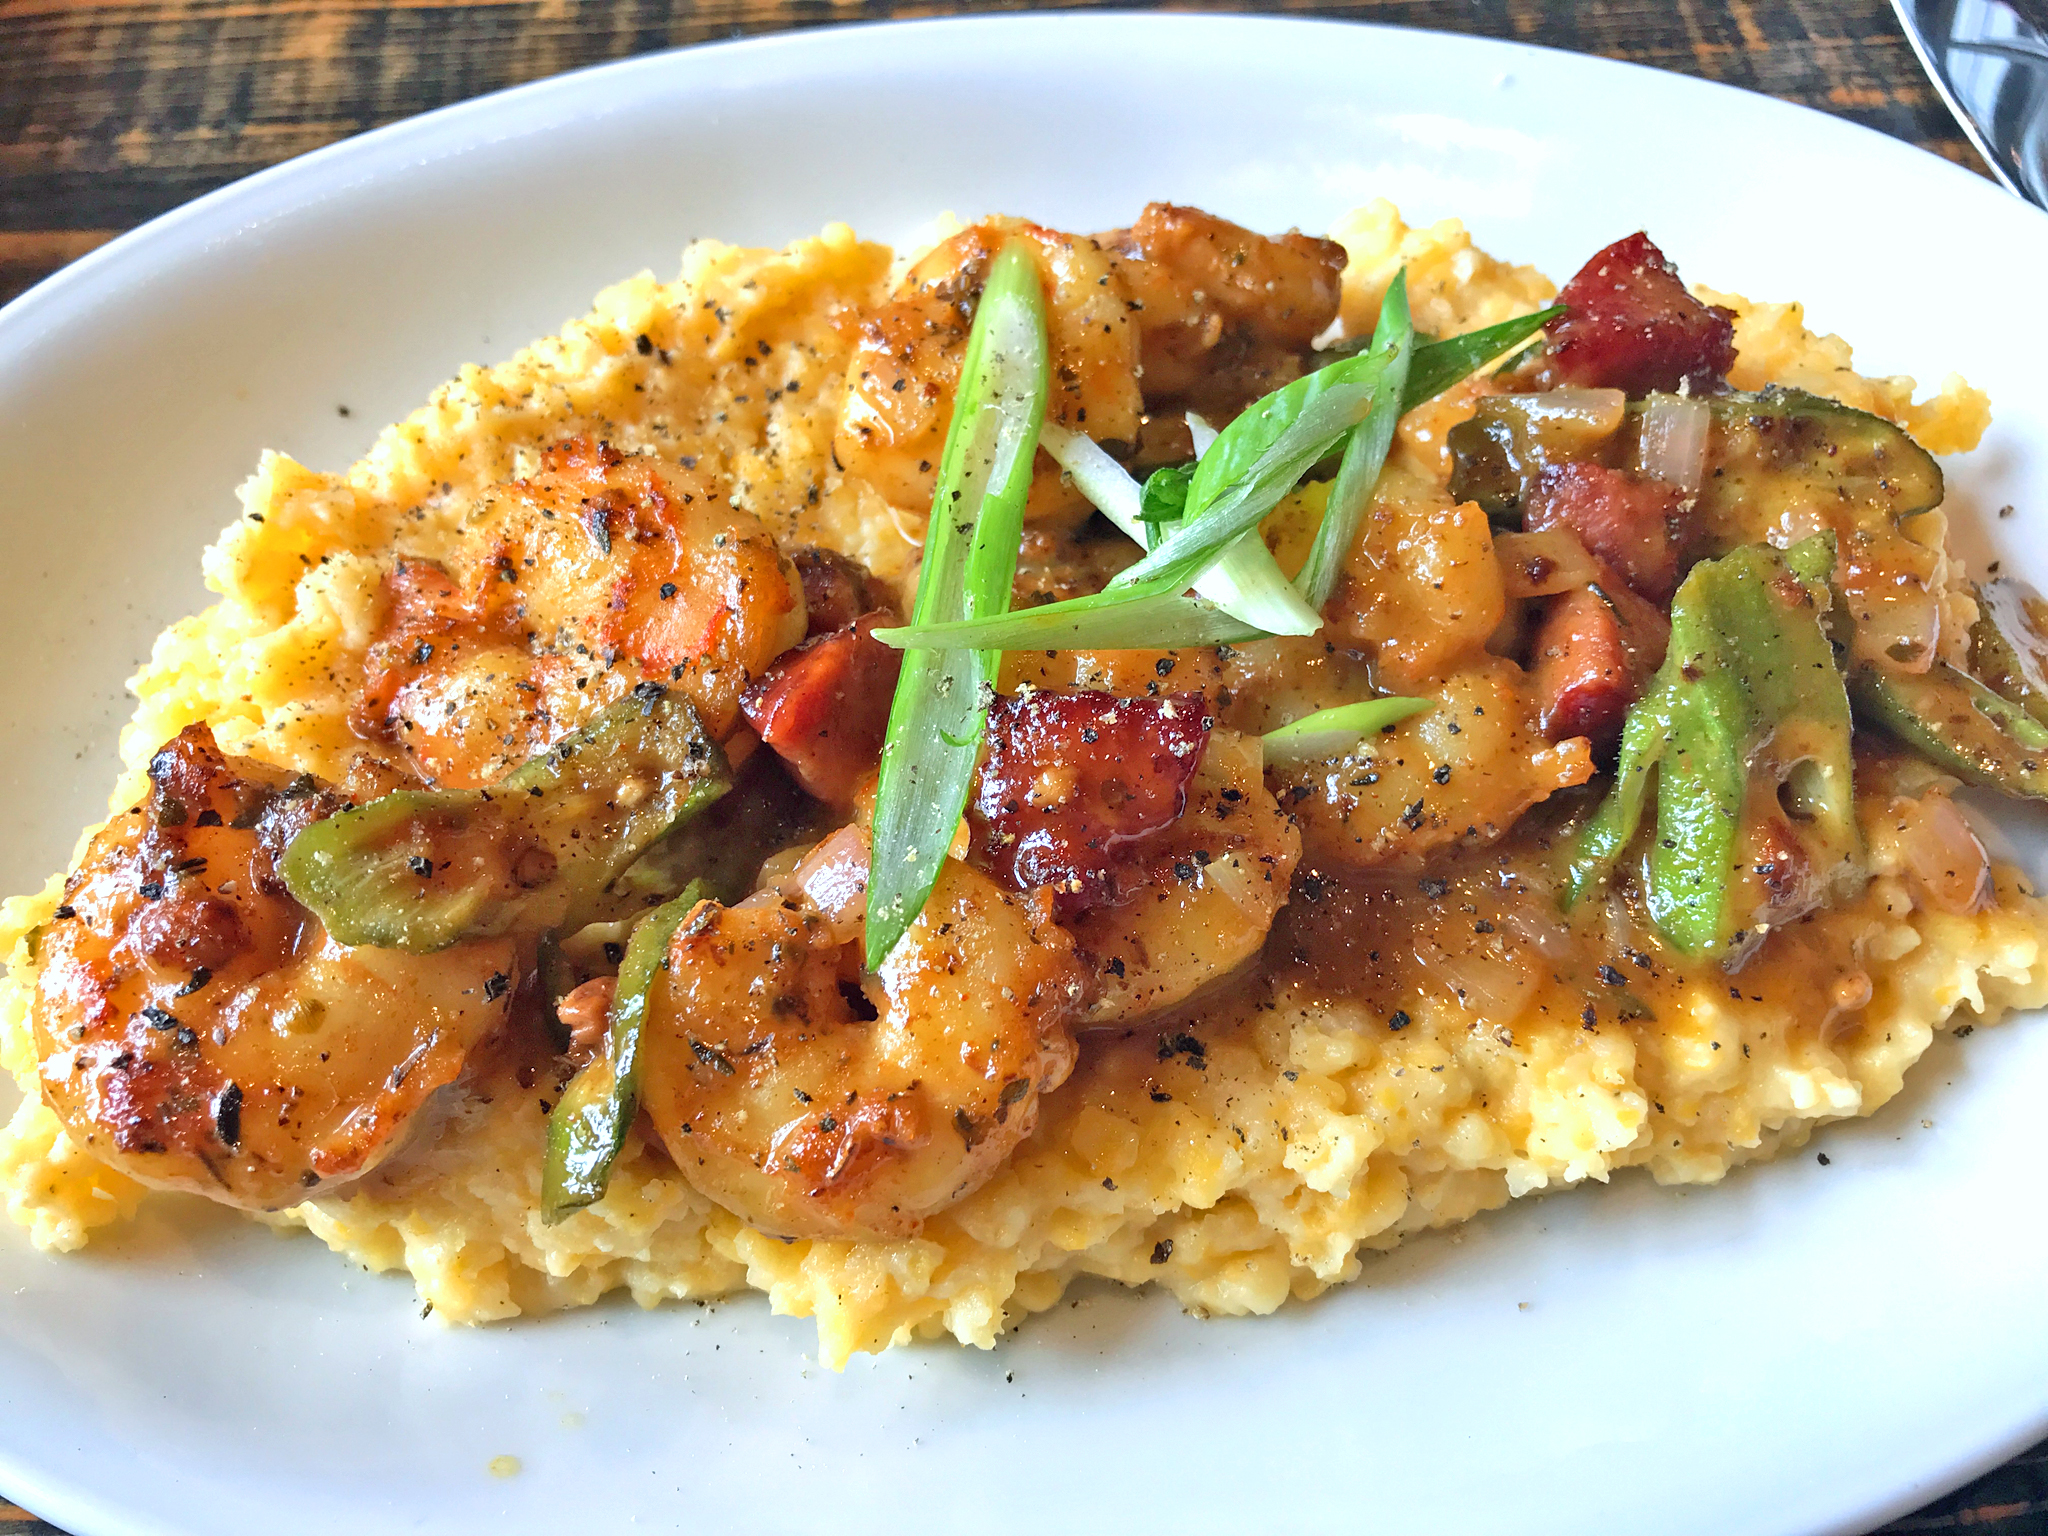 10 Best Shrimp & Grits in St. Petersburg FL 2018